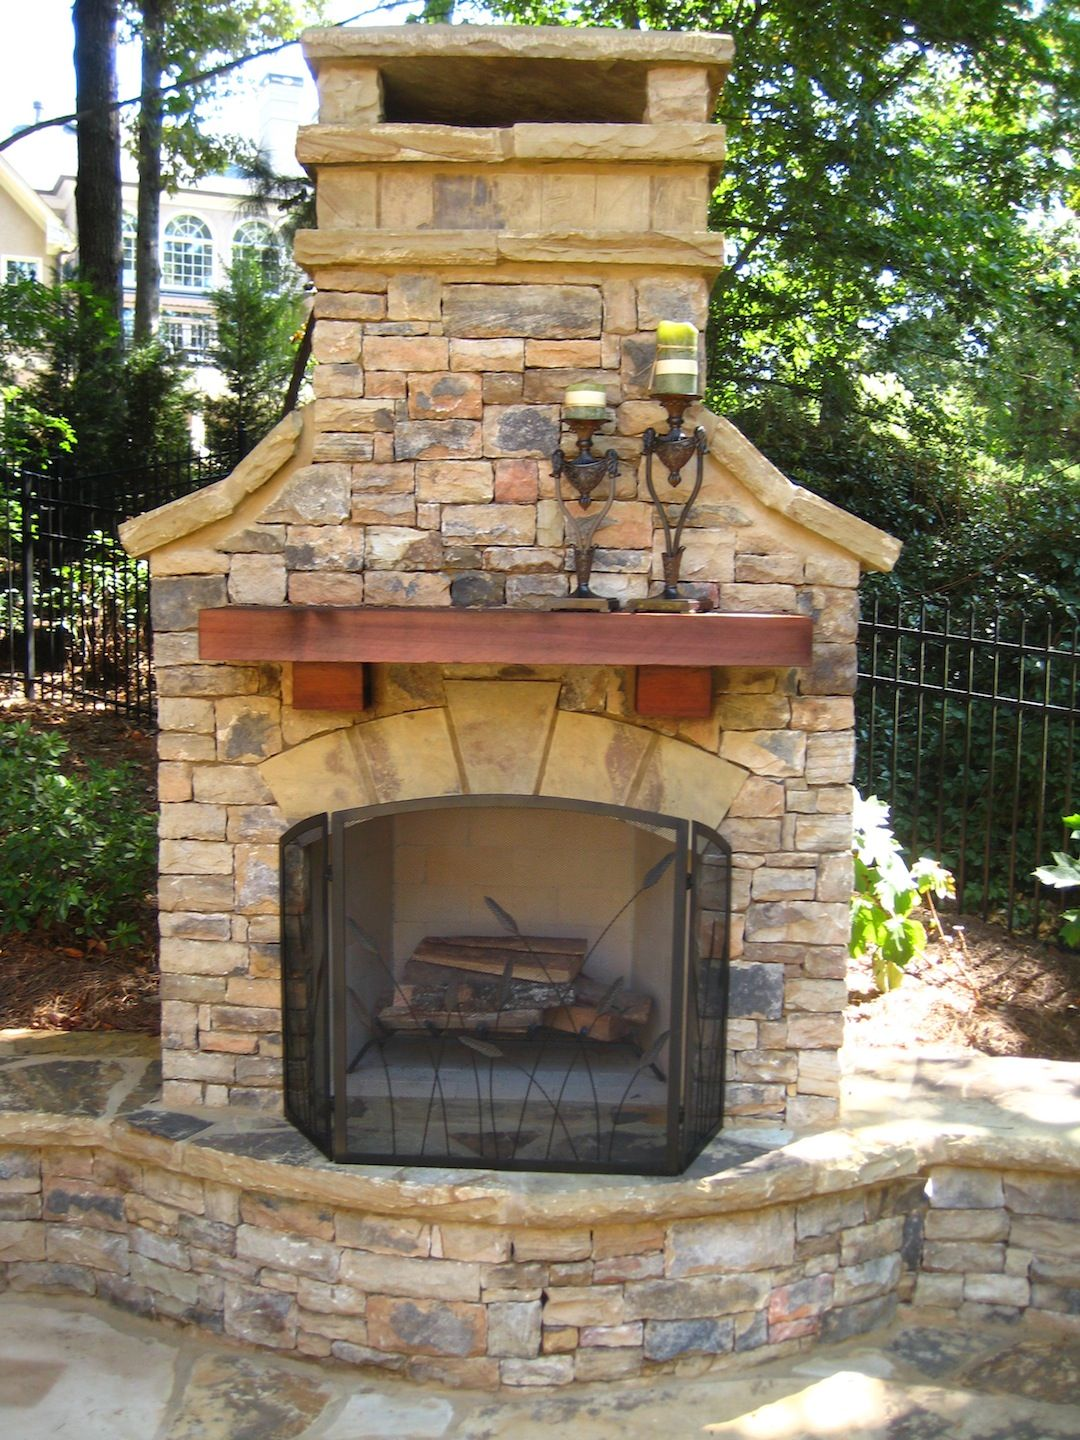 Backyard Fireplace Designs Outdoor Fireplace With Wood Mantel And Seating Wall